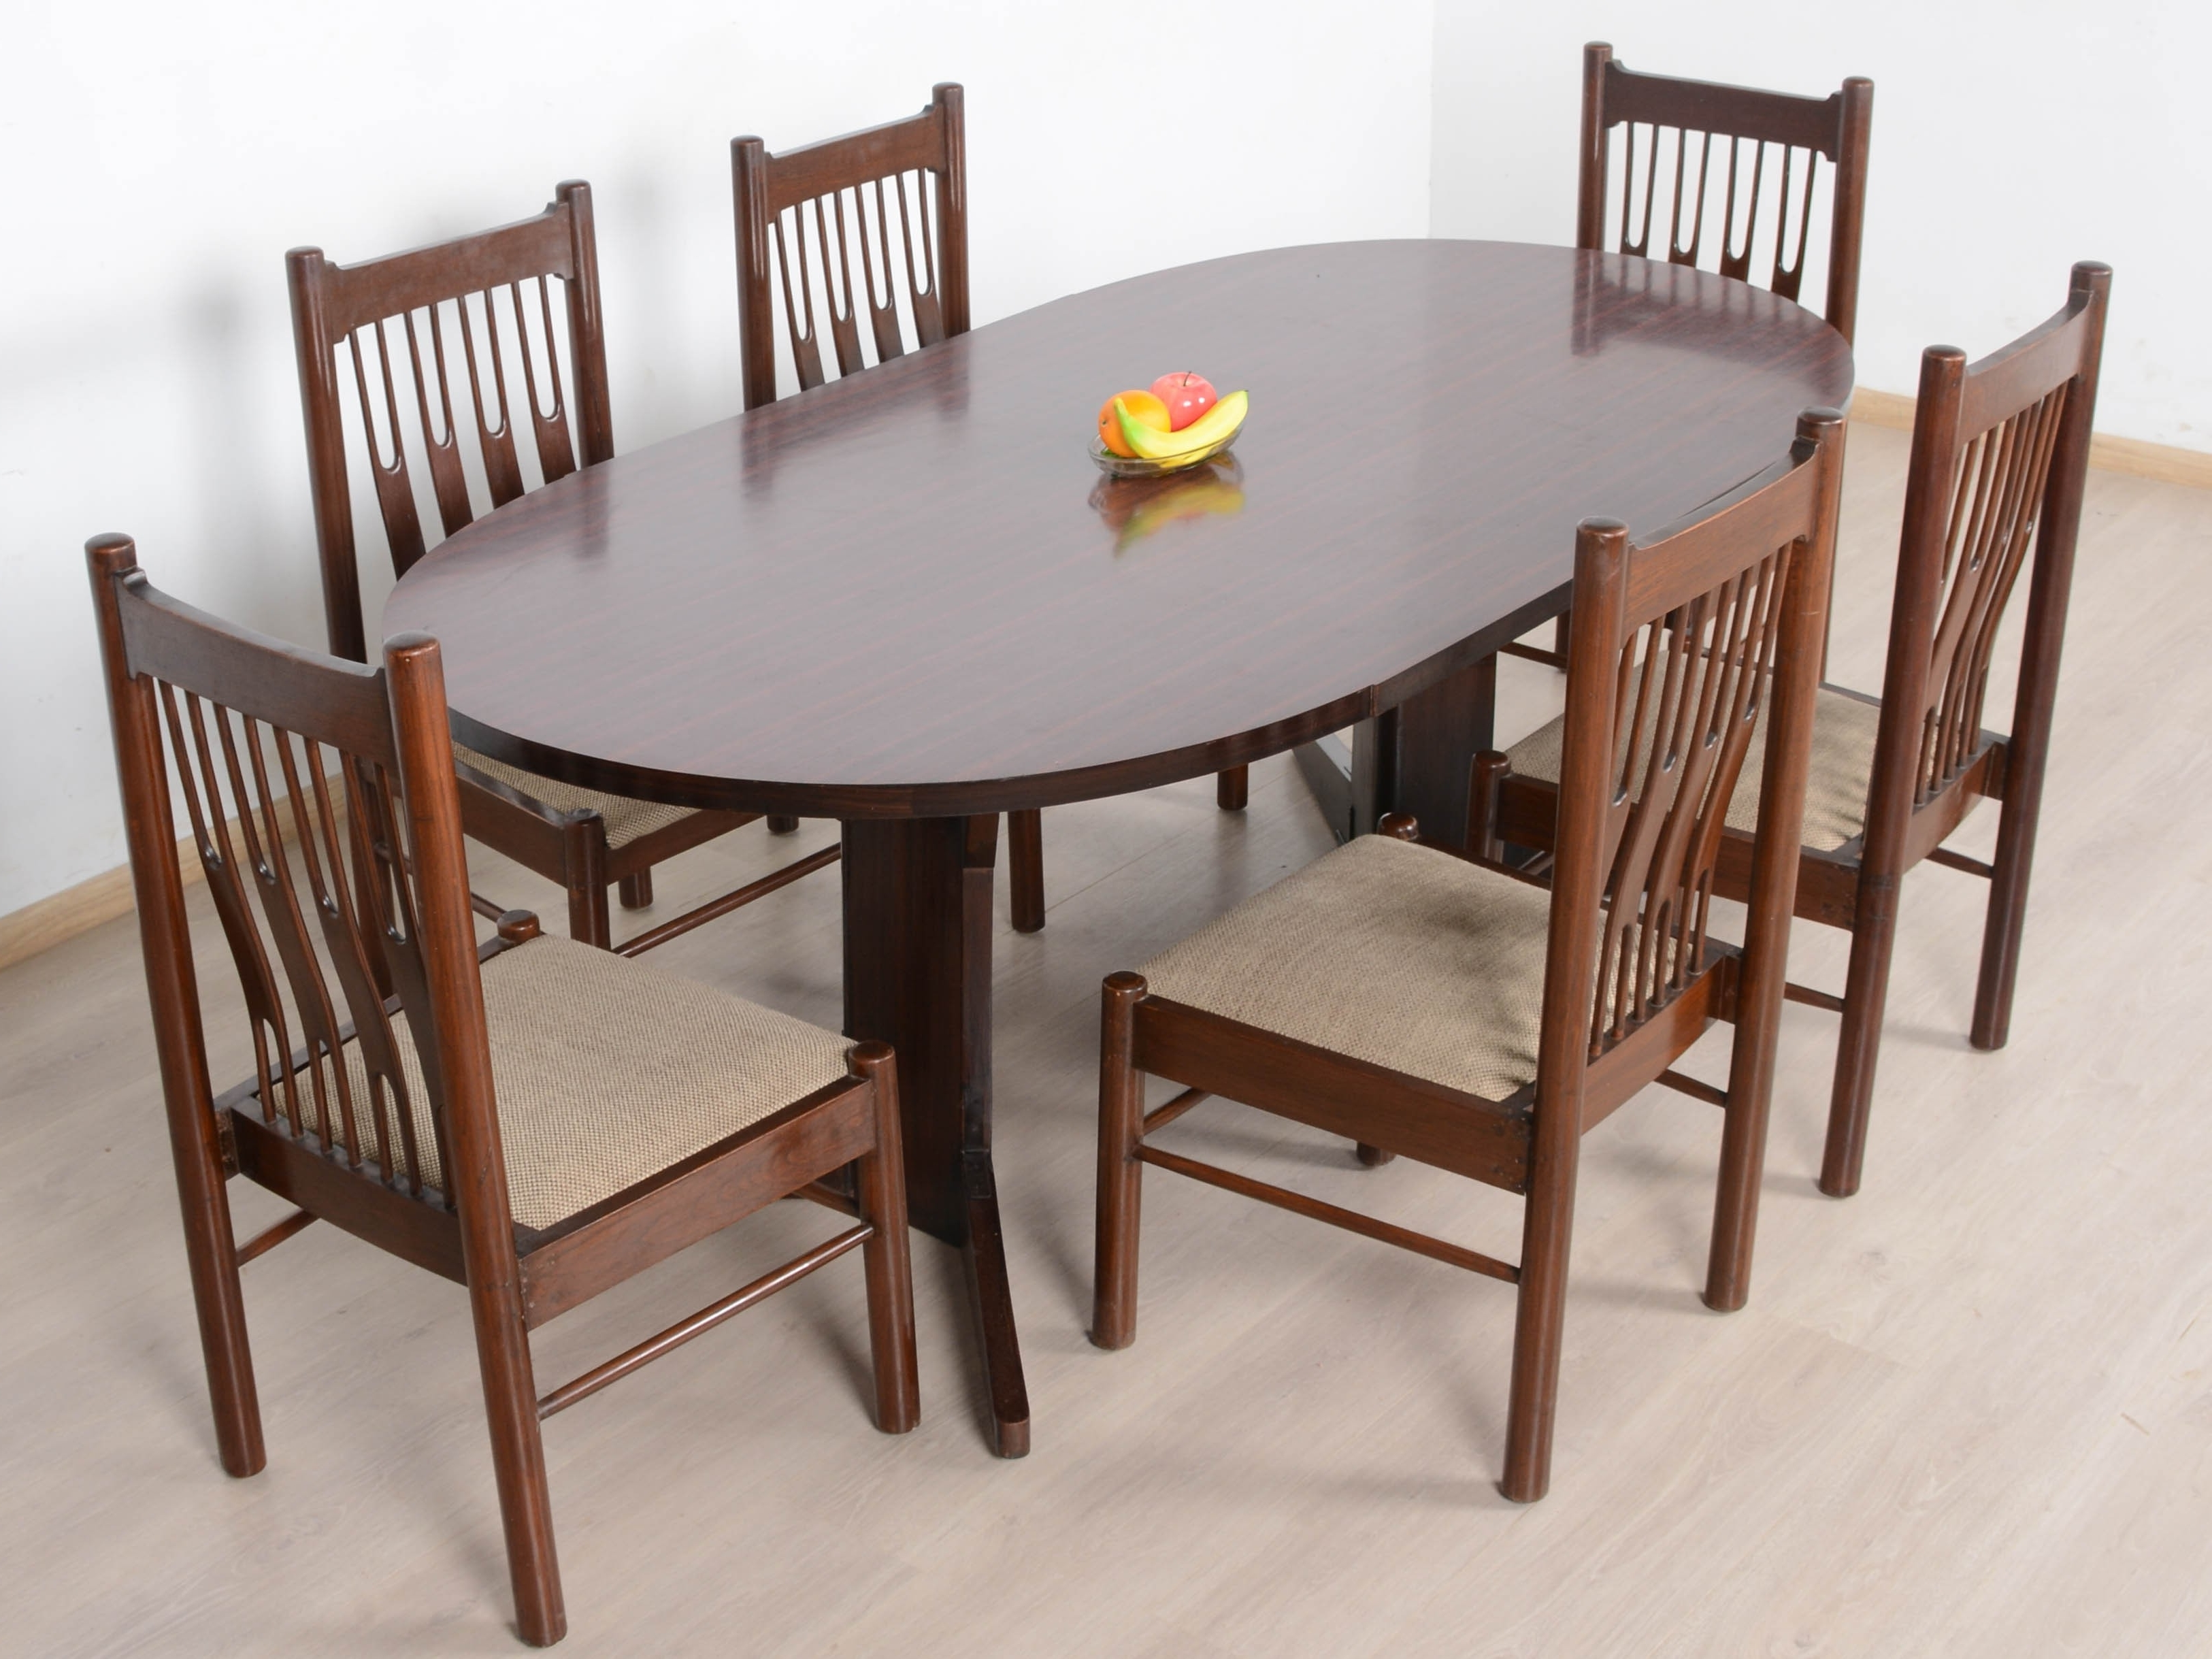 Cheap 6 Seater Dining Tables And Chairs Inside Most Popular Mason Teak 6 Seater Dining Table Set: Buy And Sell Used Furniture (View 6 of 25)